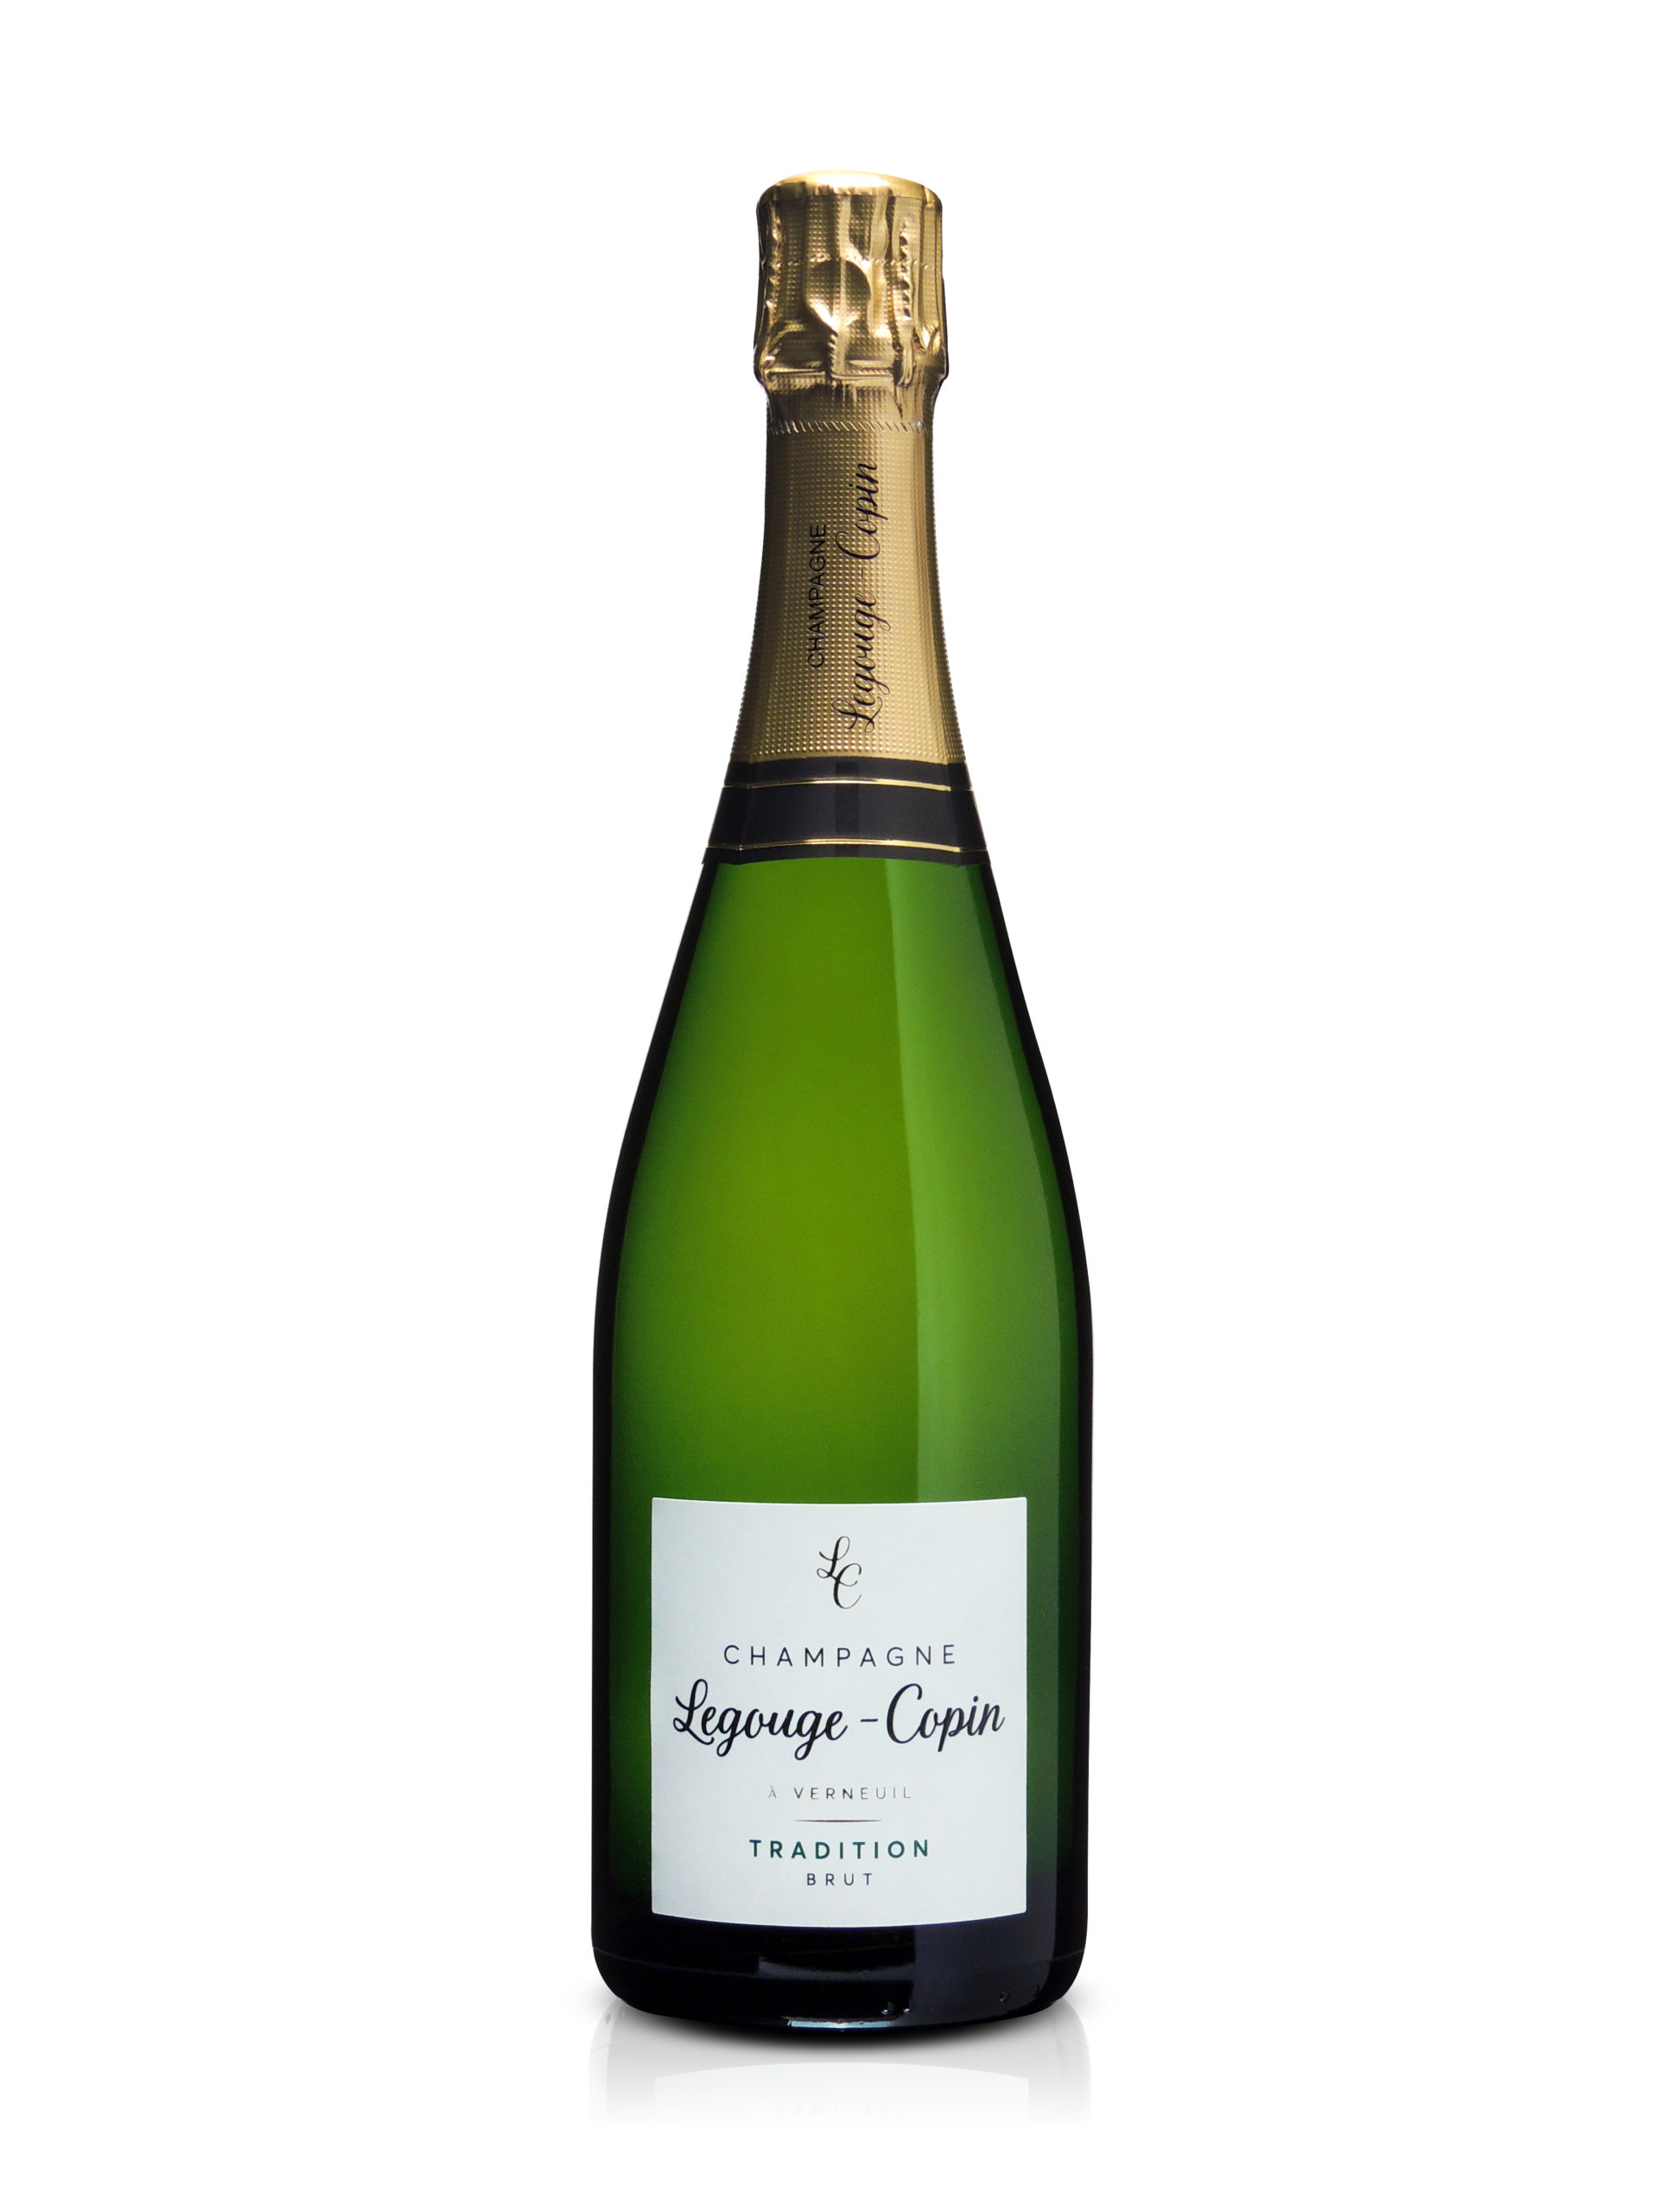 Champagne Tradition Legouge-Copin